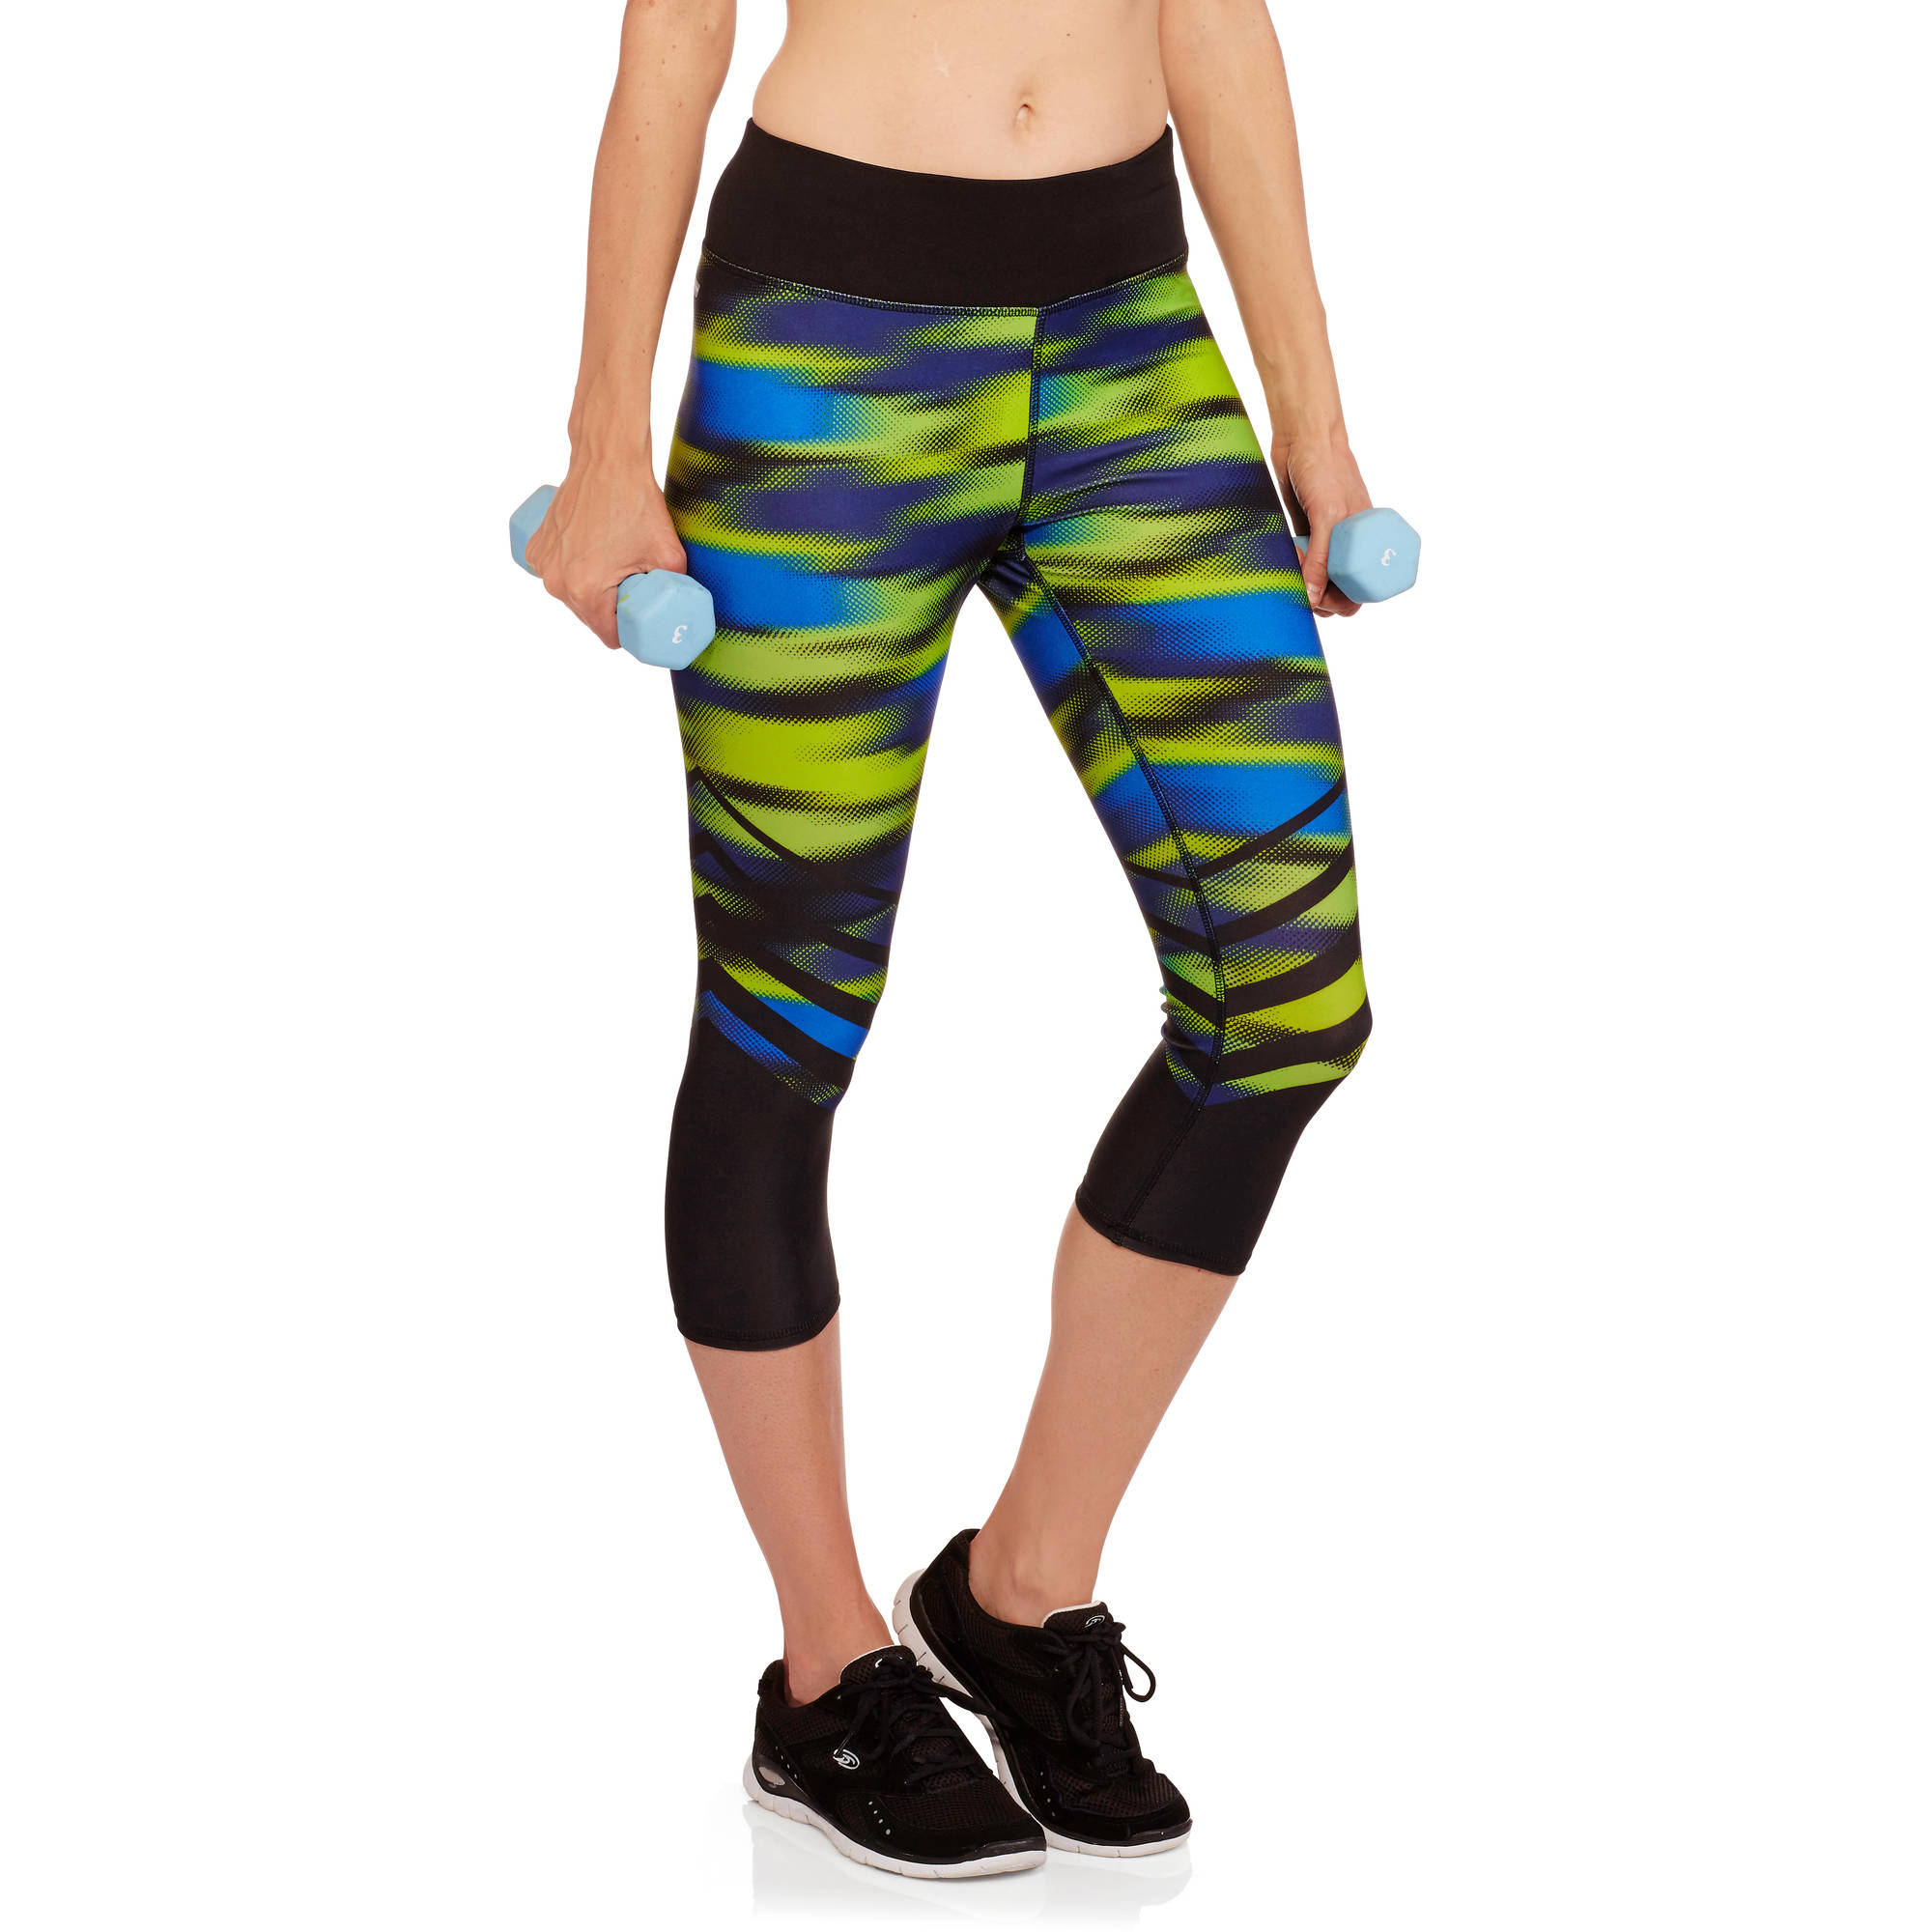 Danskin Now Women's Active Graphic Performance Capri Leggings